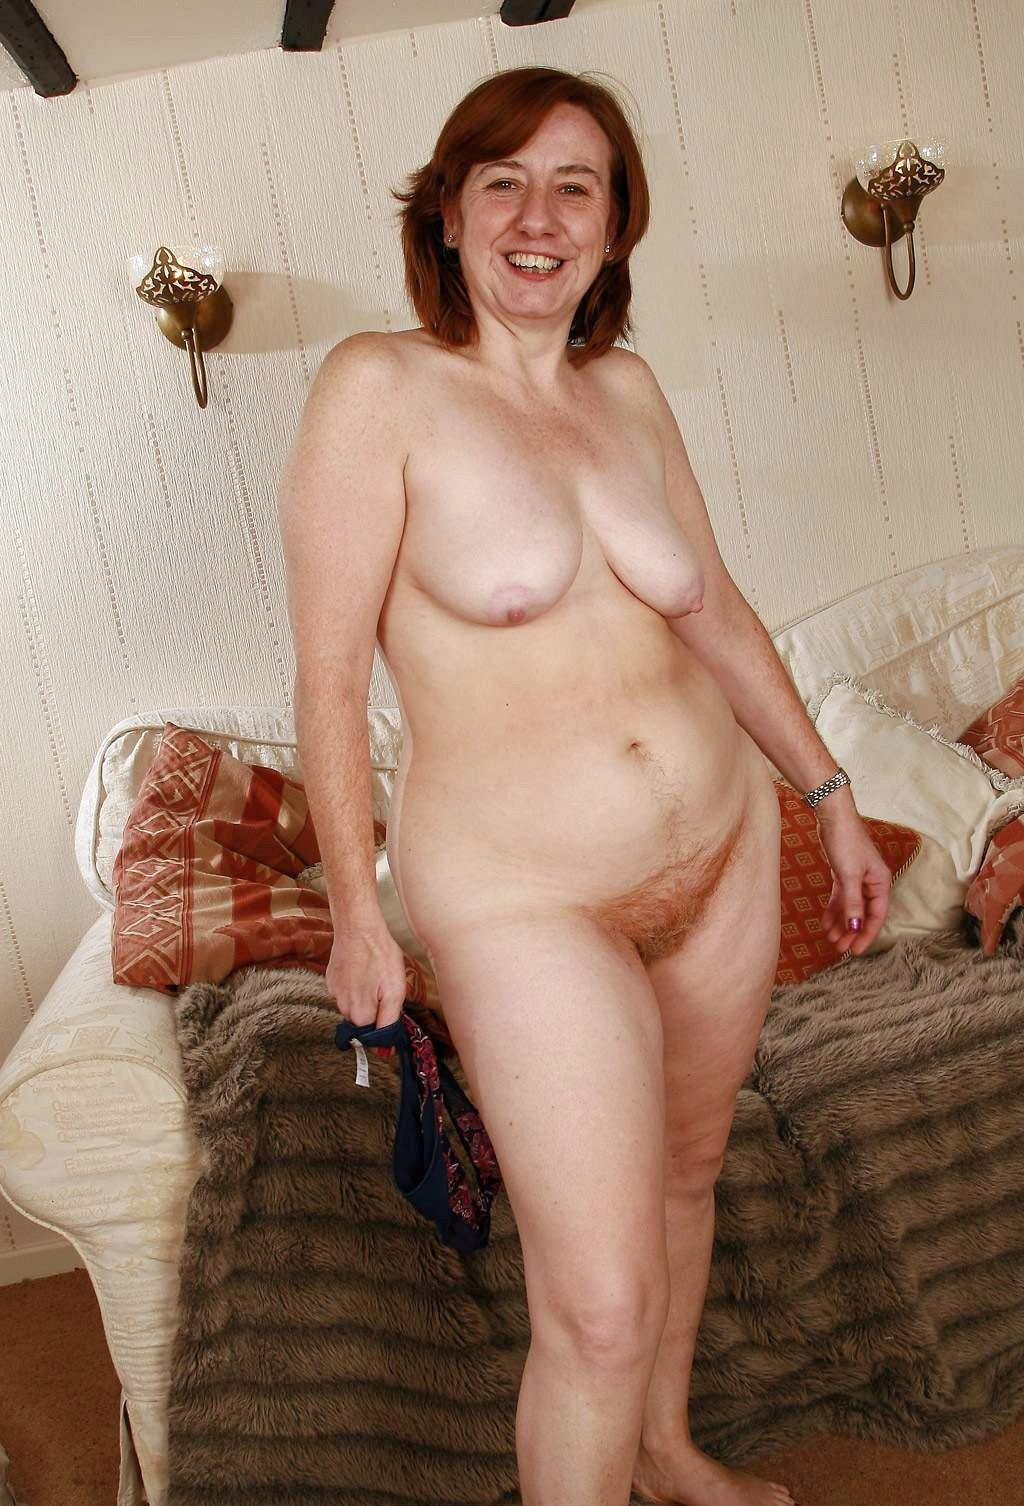 Gallery Older Porn Woman Tits Saggy Wide Hips